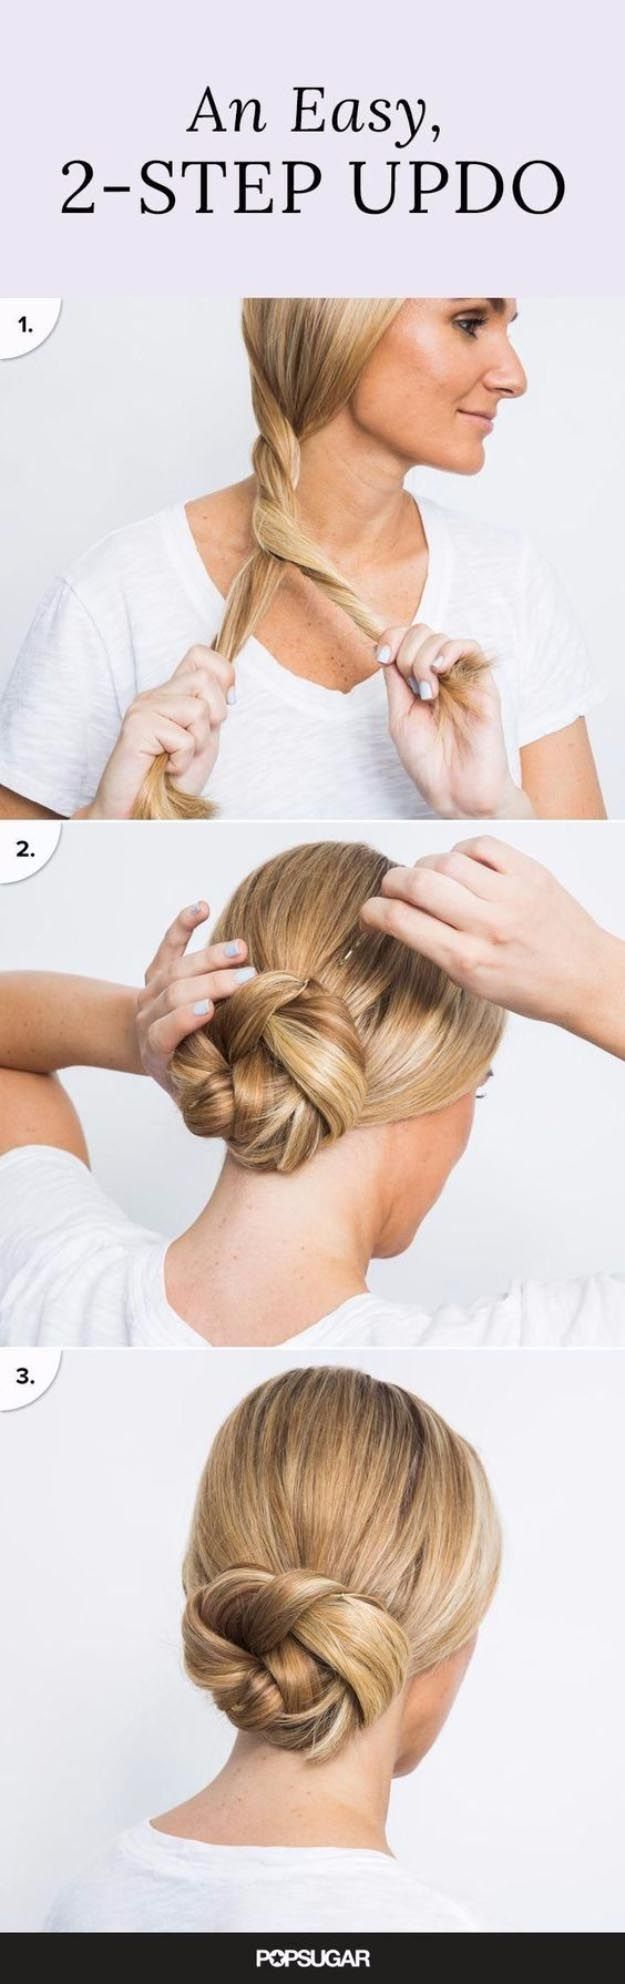 Long Hair Styles for 2017 - An Easy, 2-Step Updo- Easy Tutorials for Long Hairst...